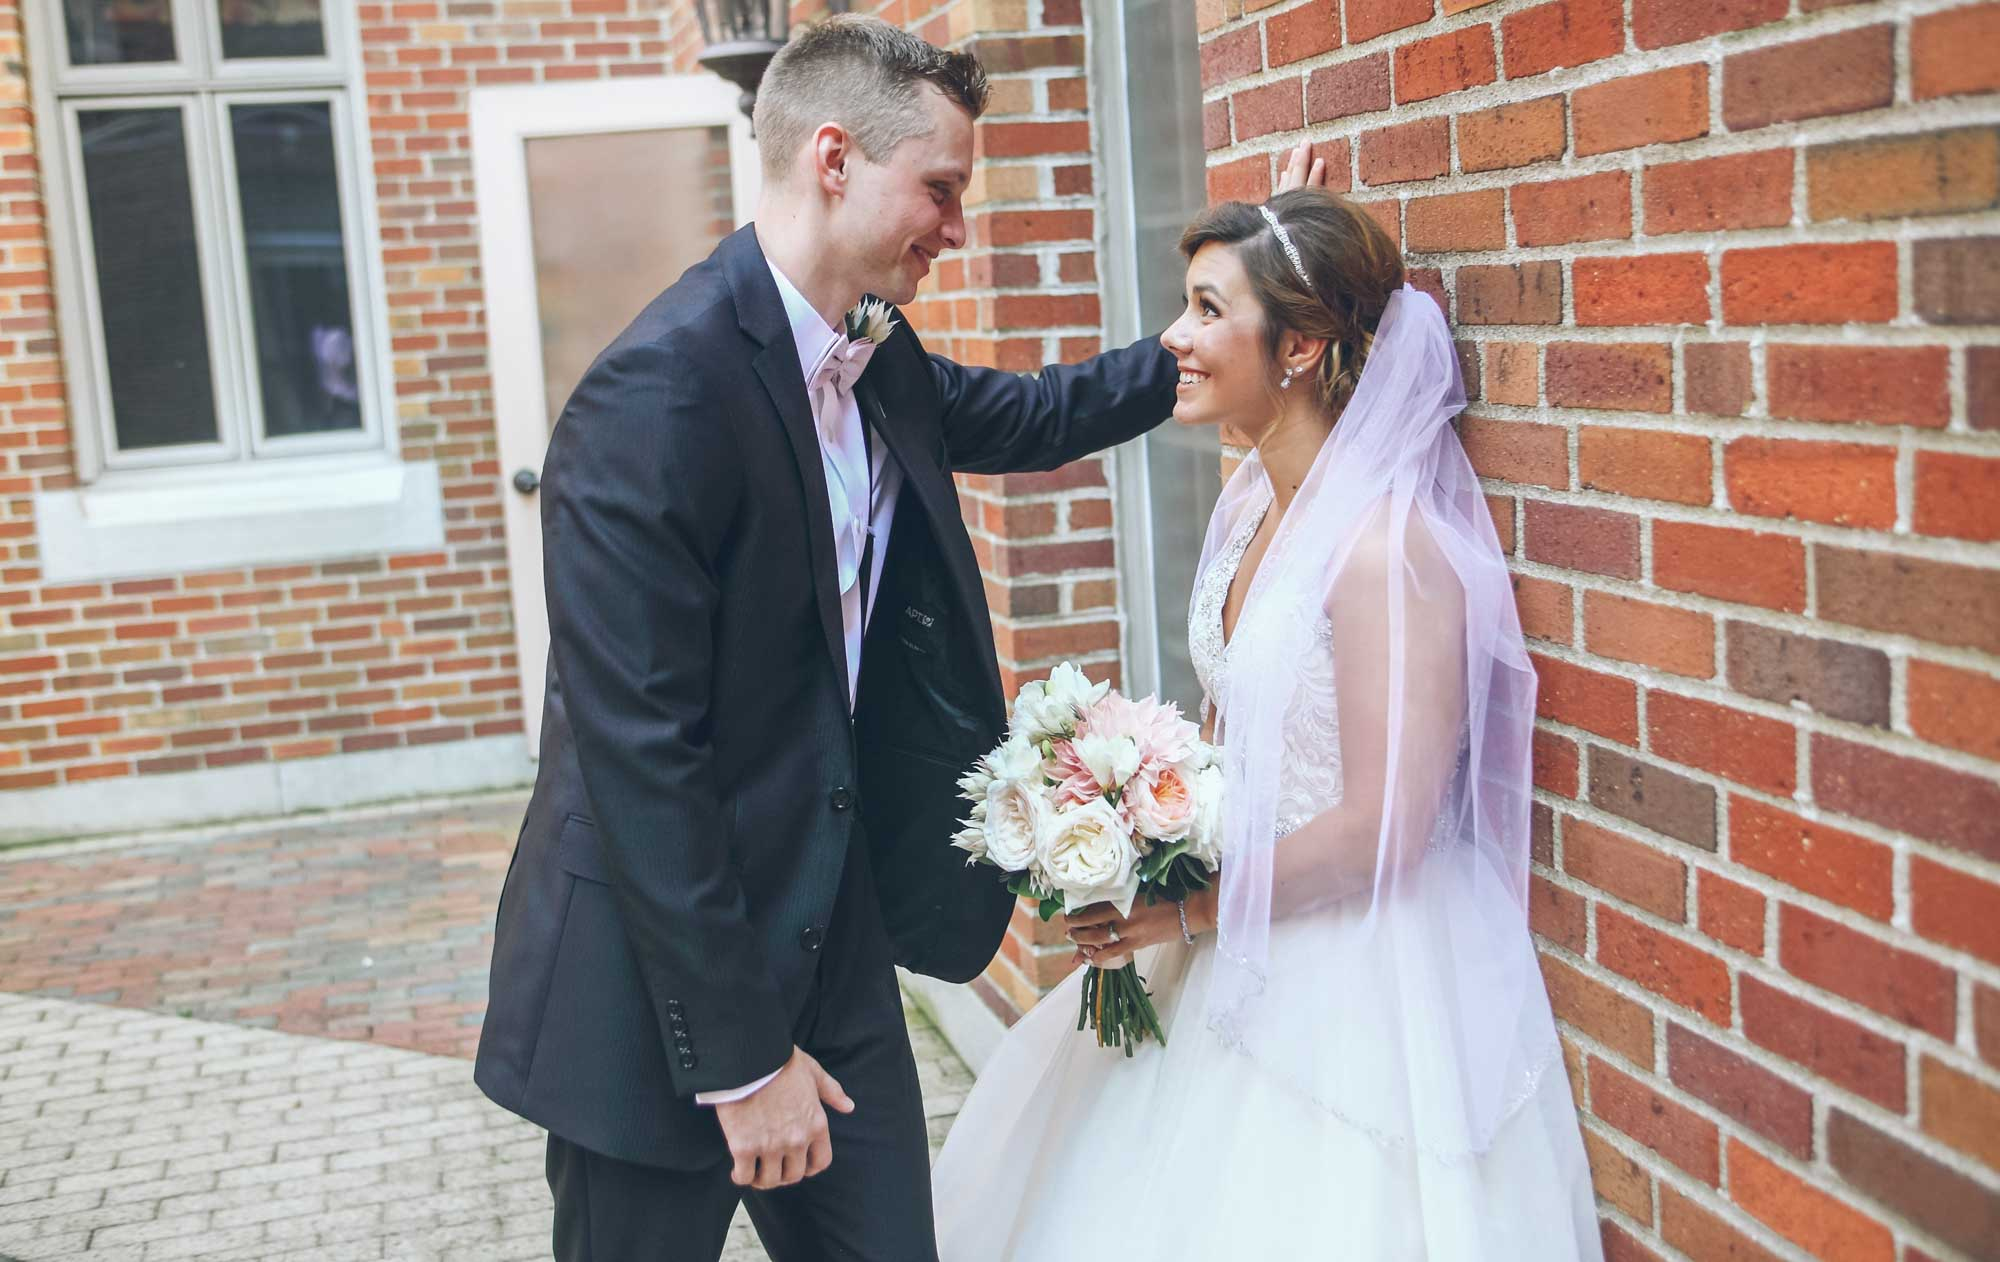 newlyweds posing in front of a brick wall, photographed by Eivan's in Cleveland